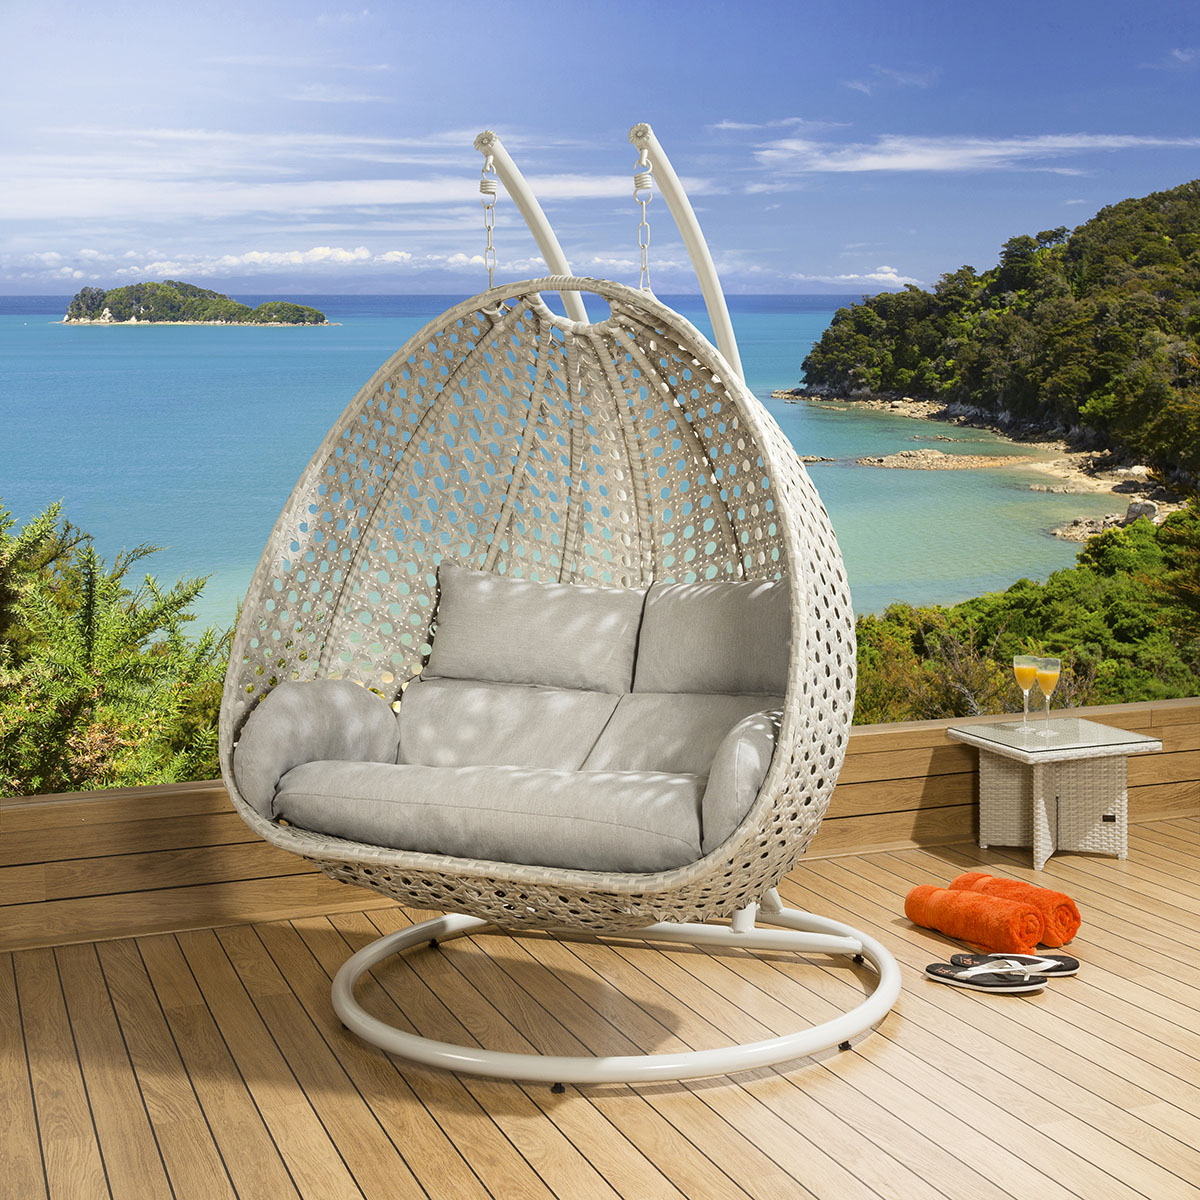 Pod Hanging Chair Luxury Outdoor 2 Person Garden Pod Hanging Chair Swing